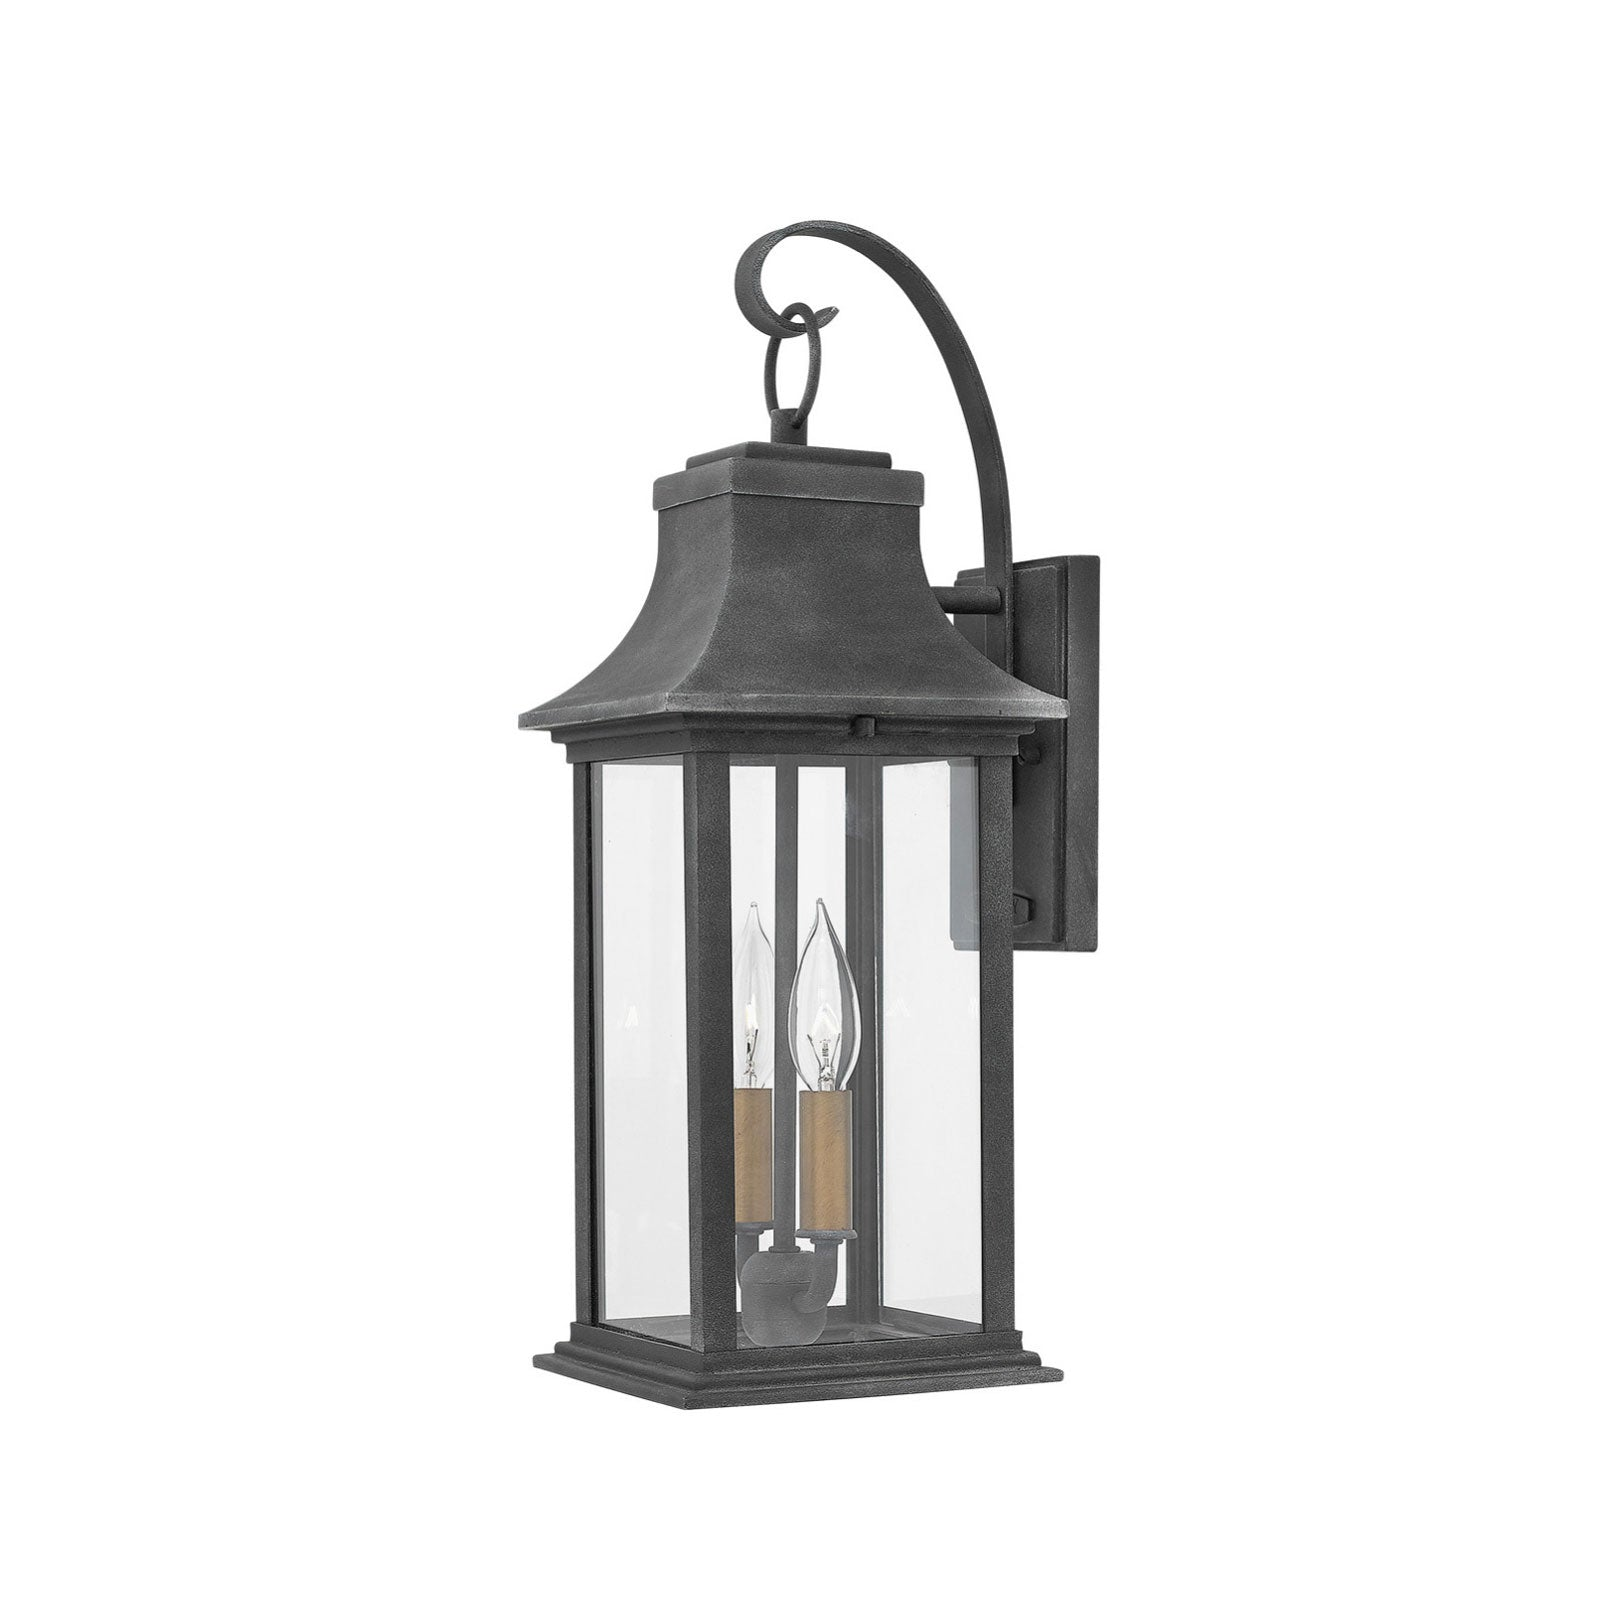 Williamsburg Lantern - Medium